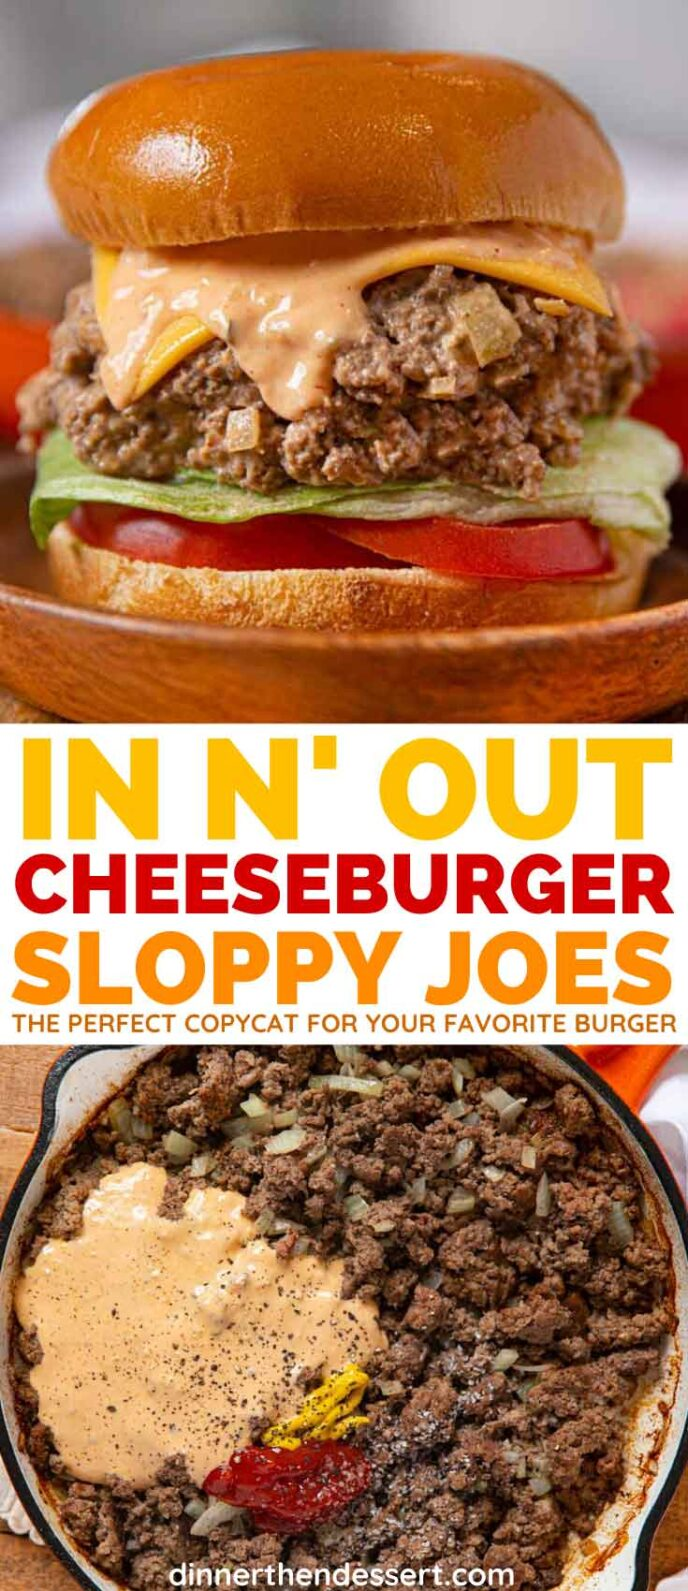 In-N-Out Cheeseburger Sloppy Joes collage